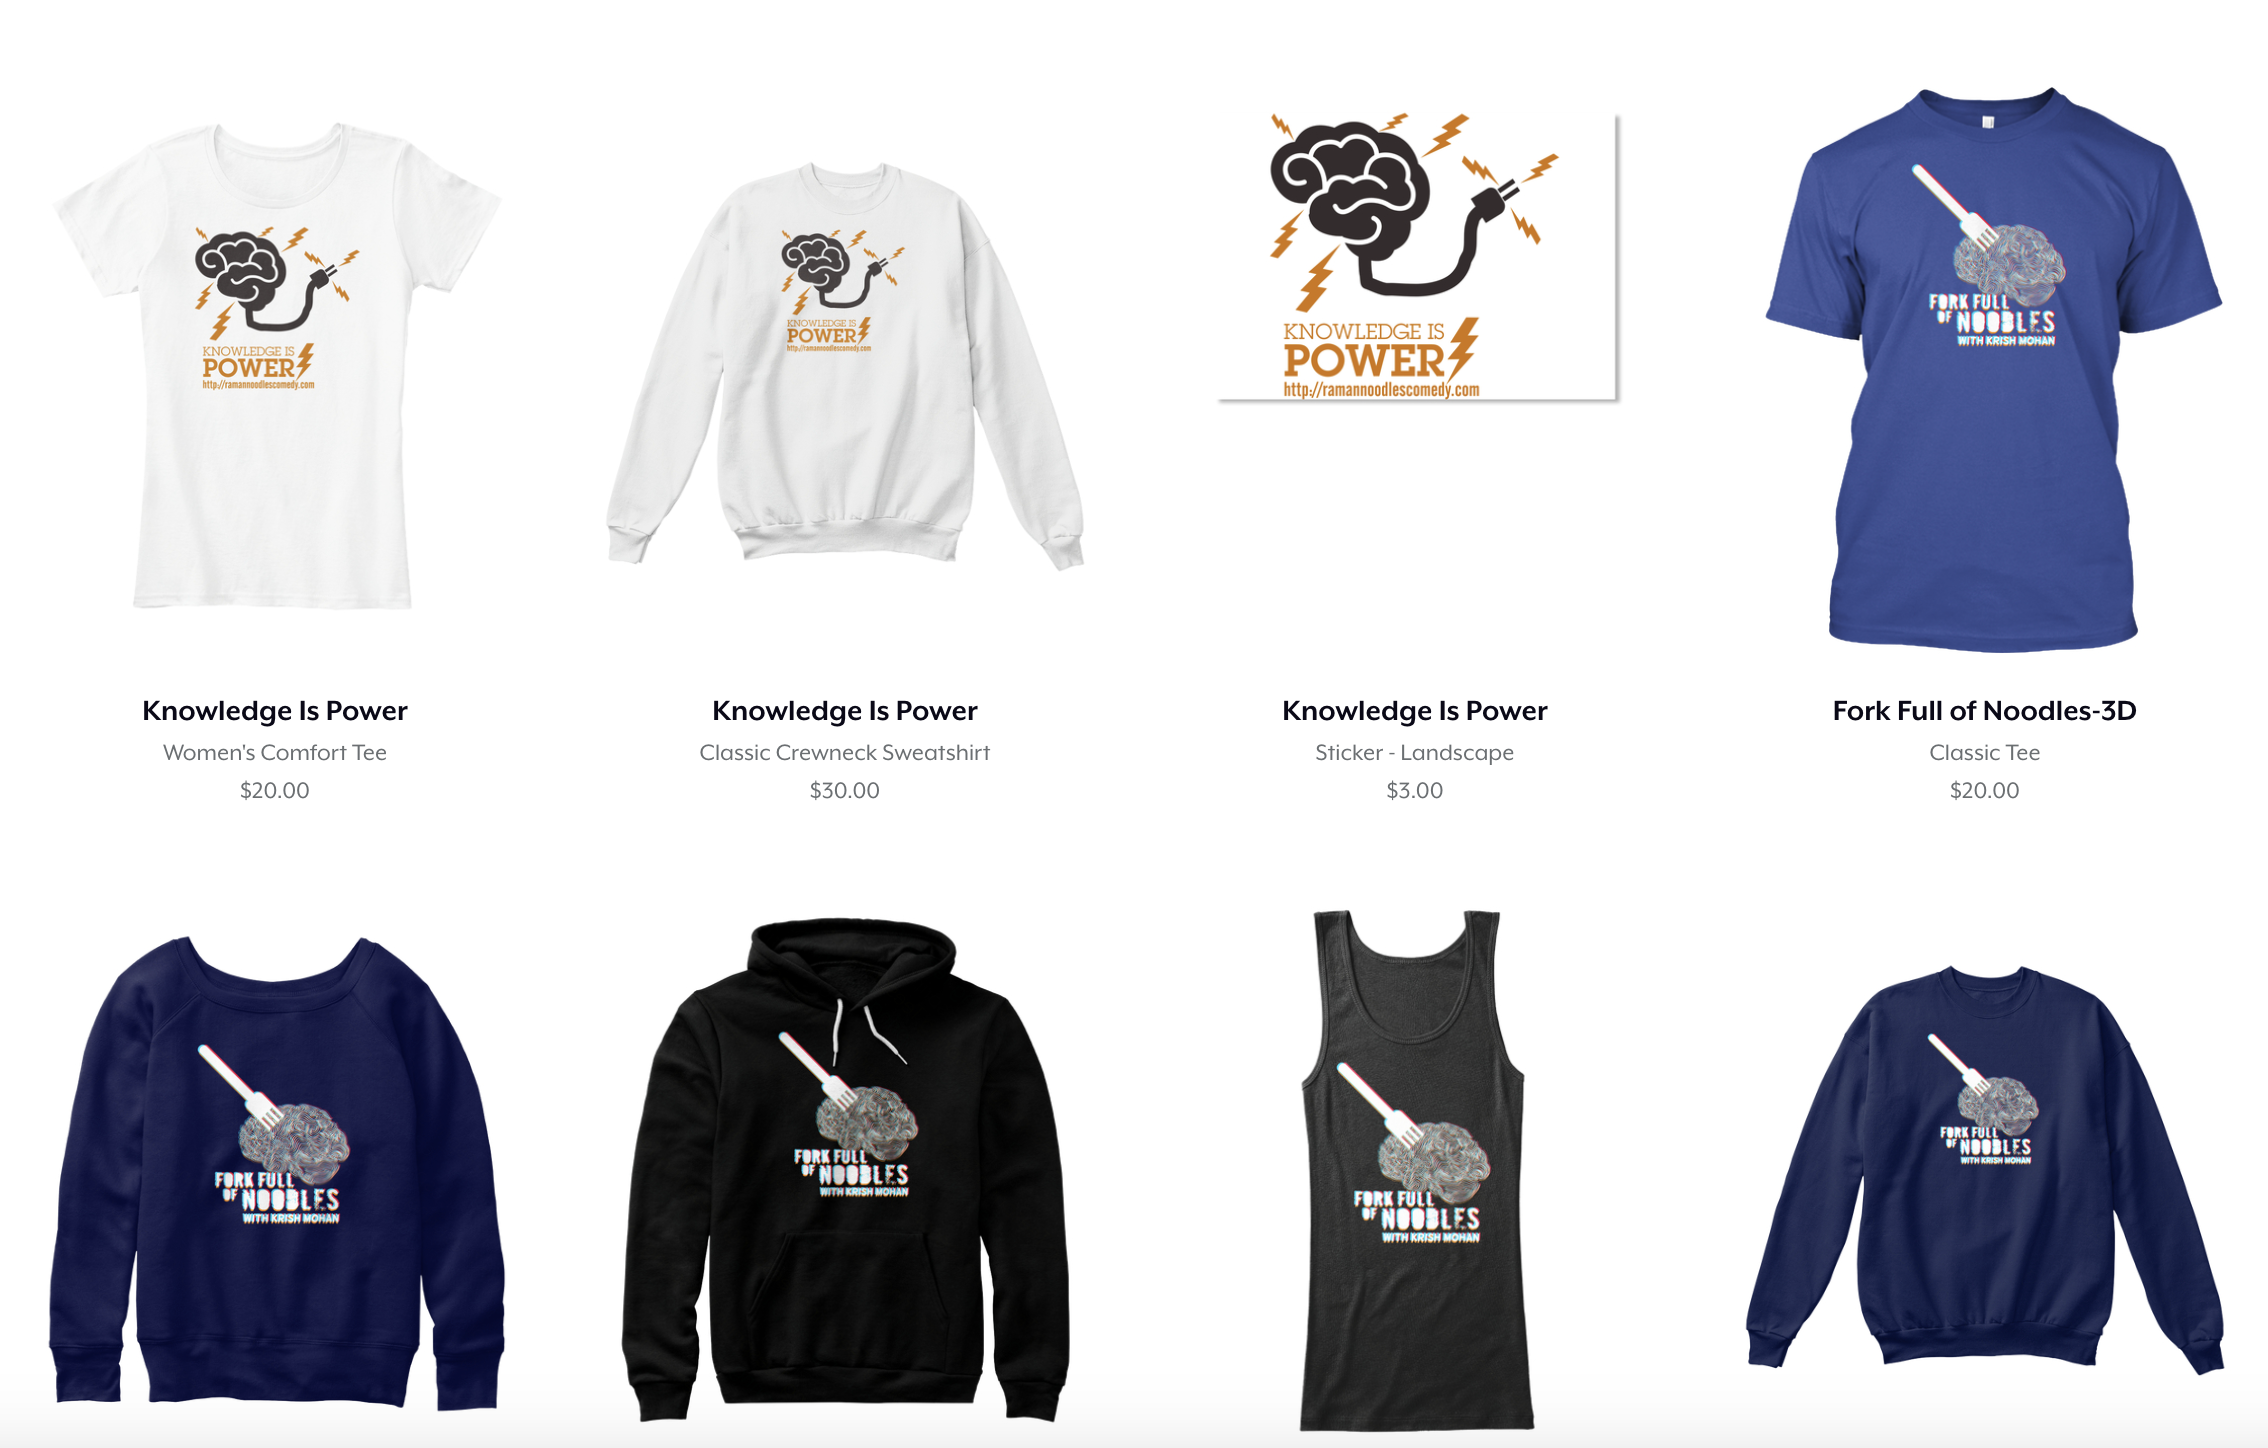 *NEW* Apparel Available For A Discount! Expires September 30th!